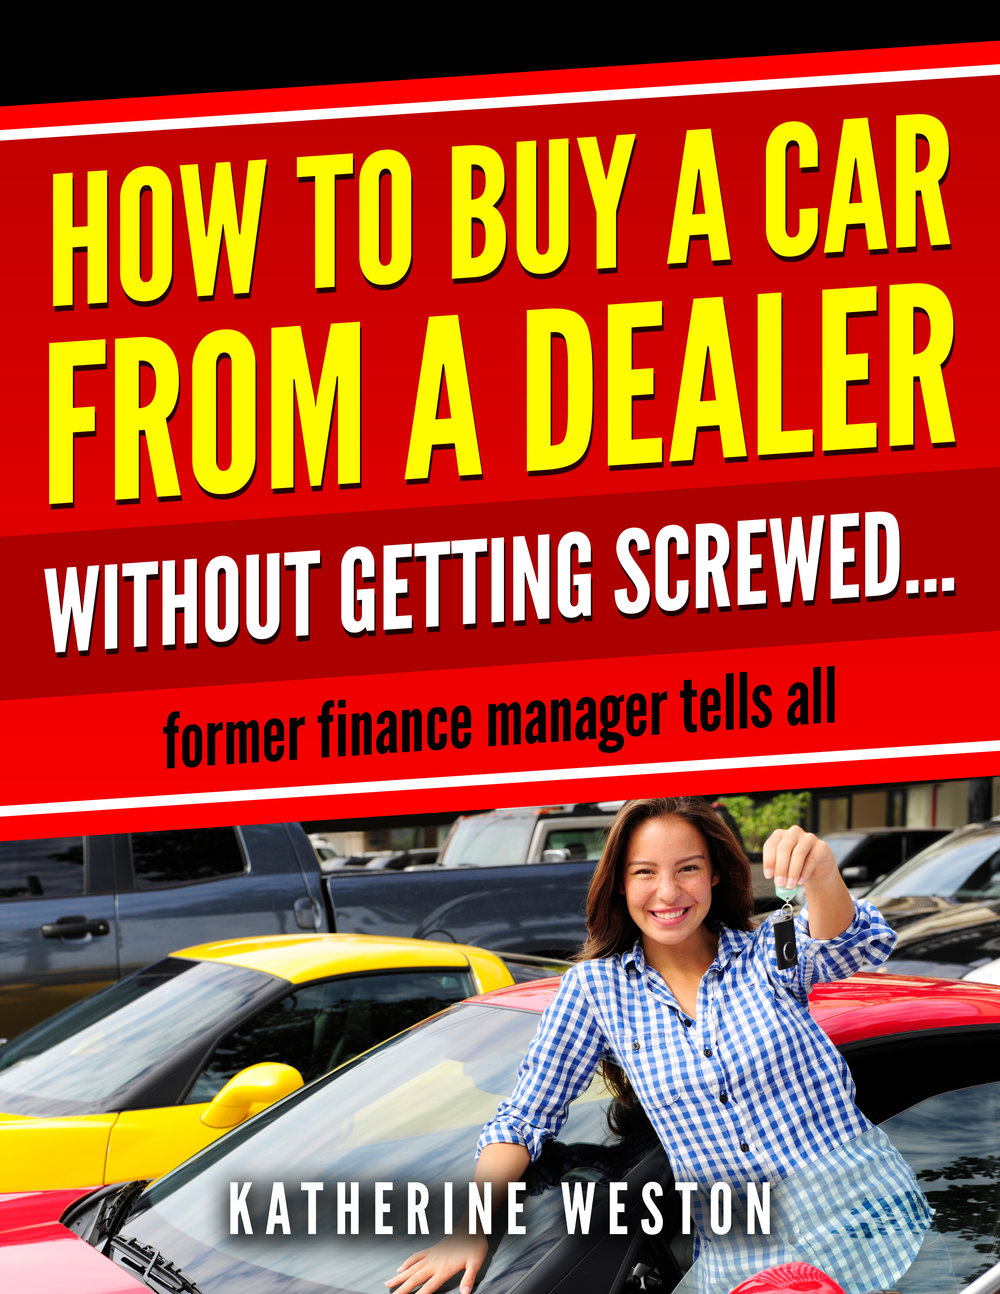 Westonwood_How_To_Buy_A_Car_From_A_Dealer_Without_Getting_Screwed.jpg